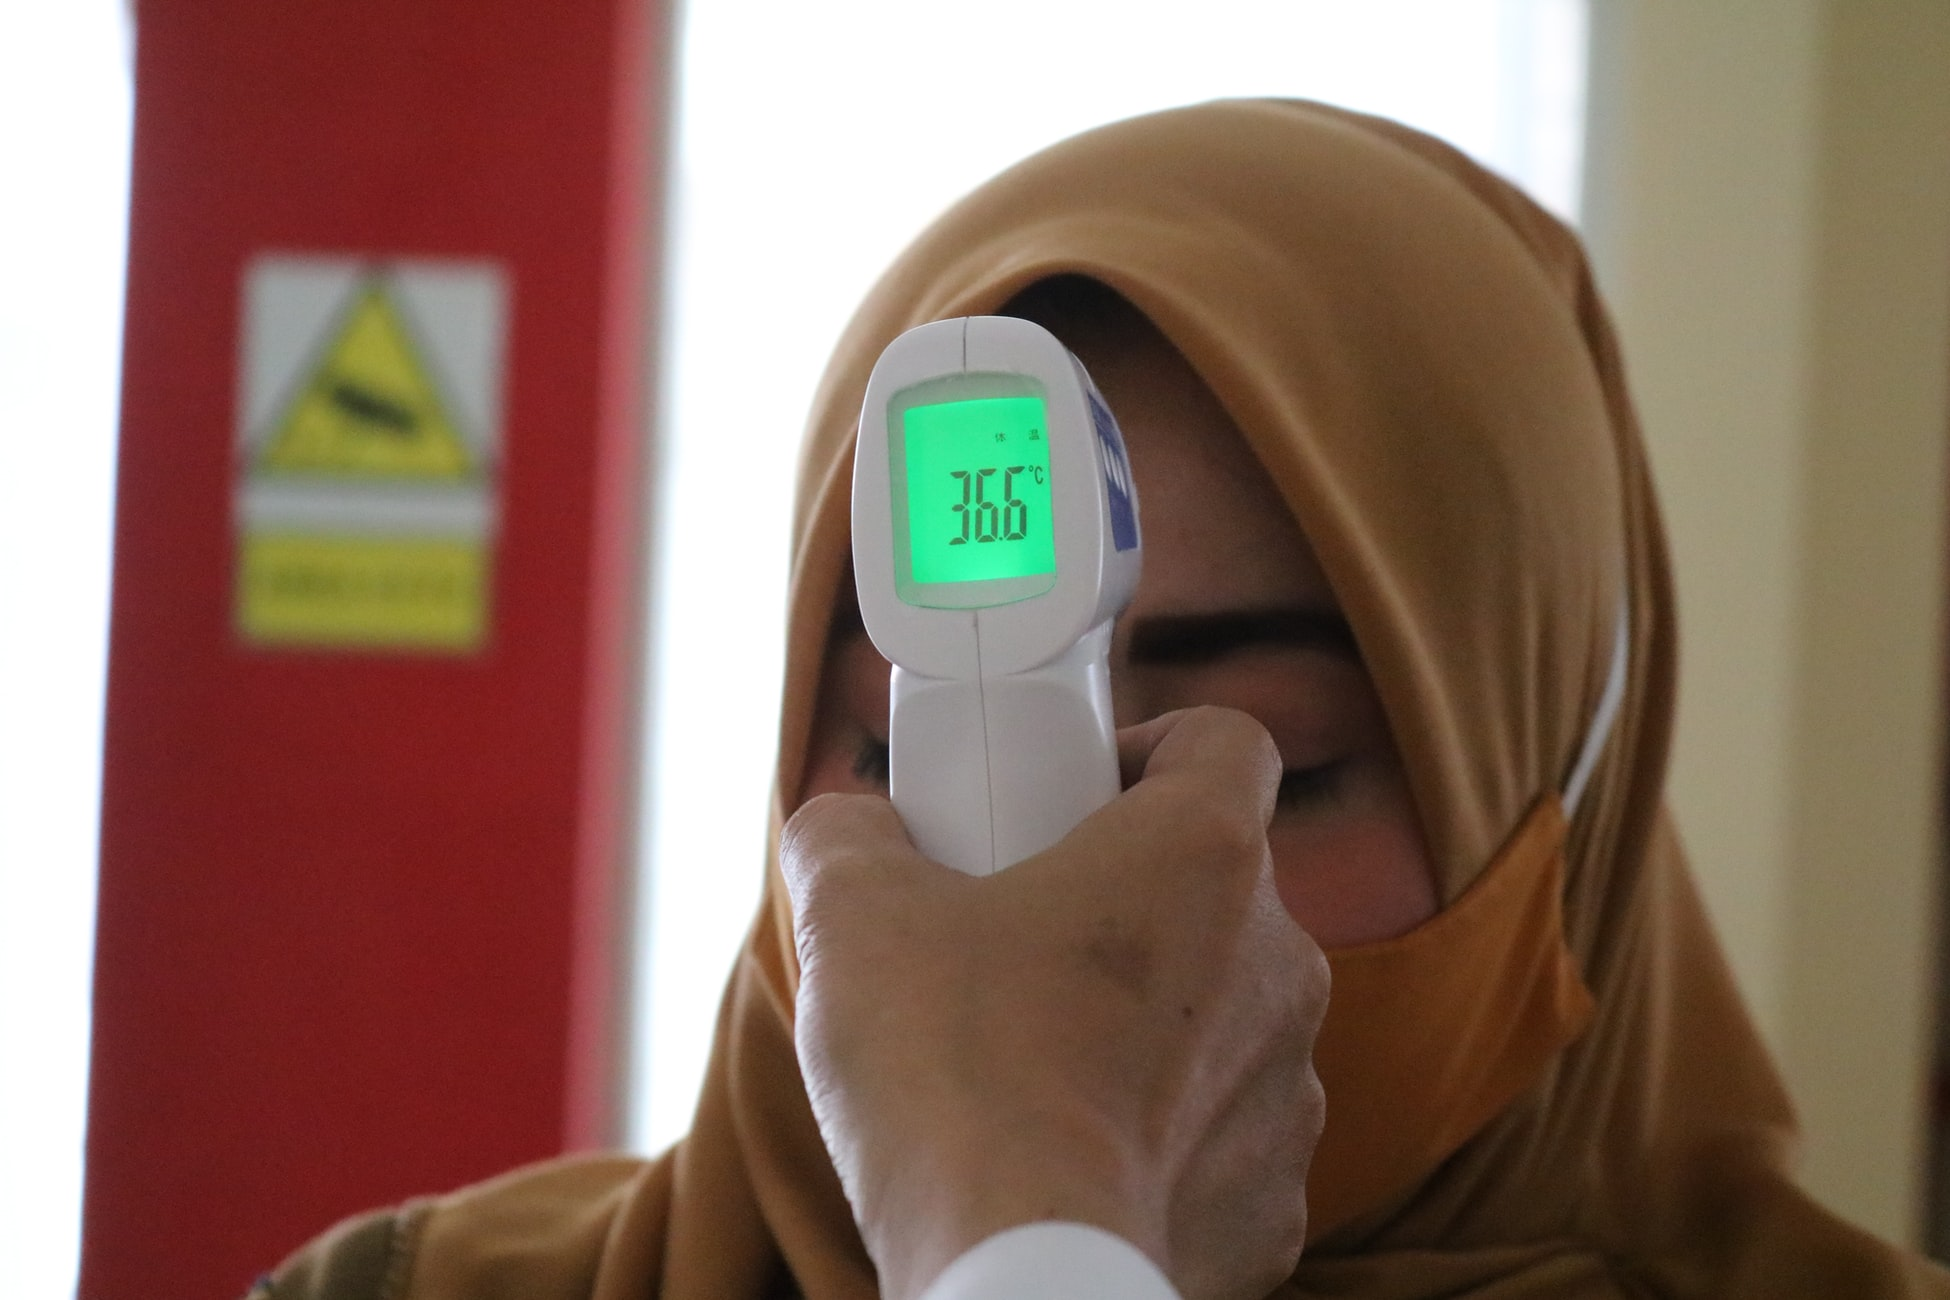 As a Temperature Screener, the main responsibility is to check the temperature of the public and ensuring that SafeEntry is utilised.